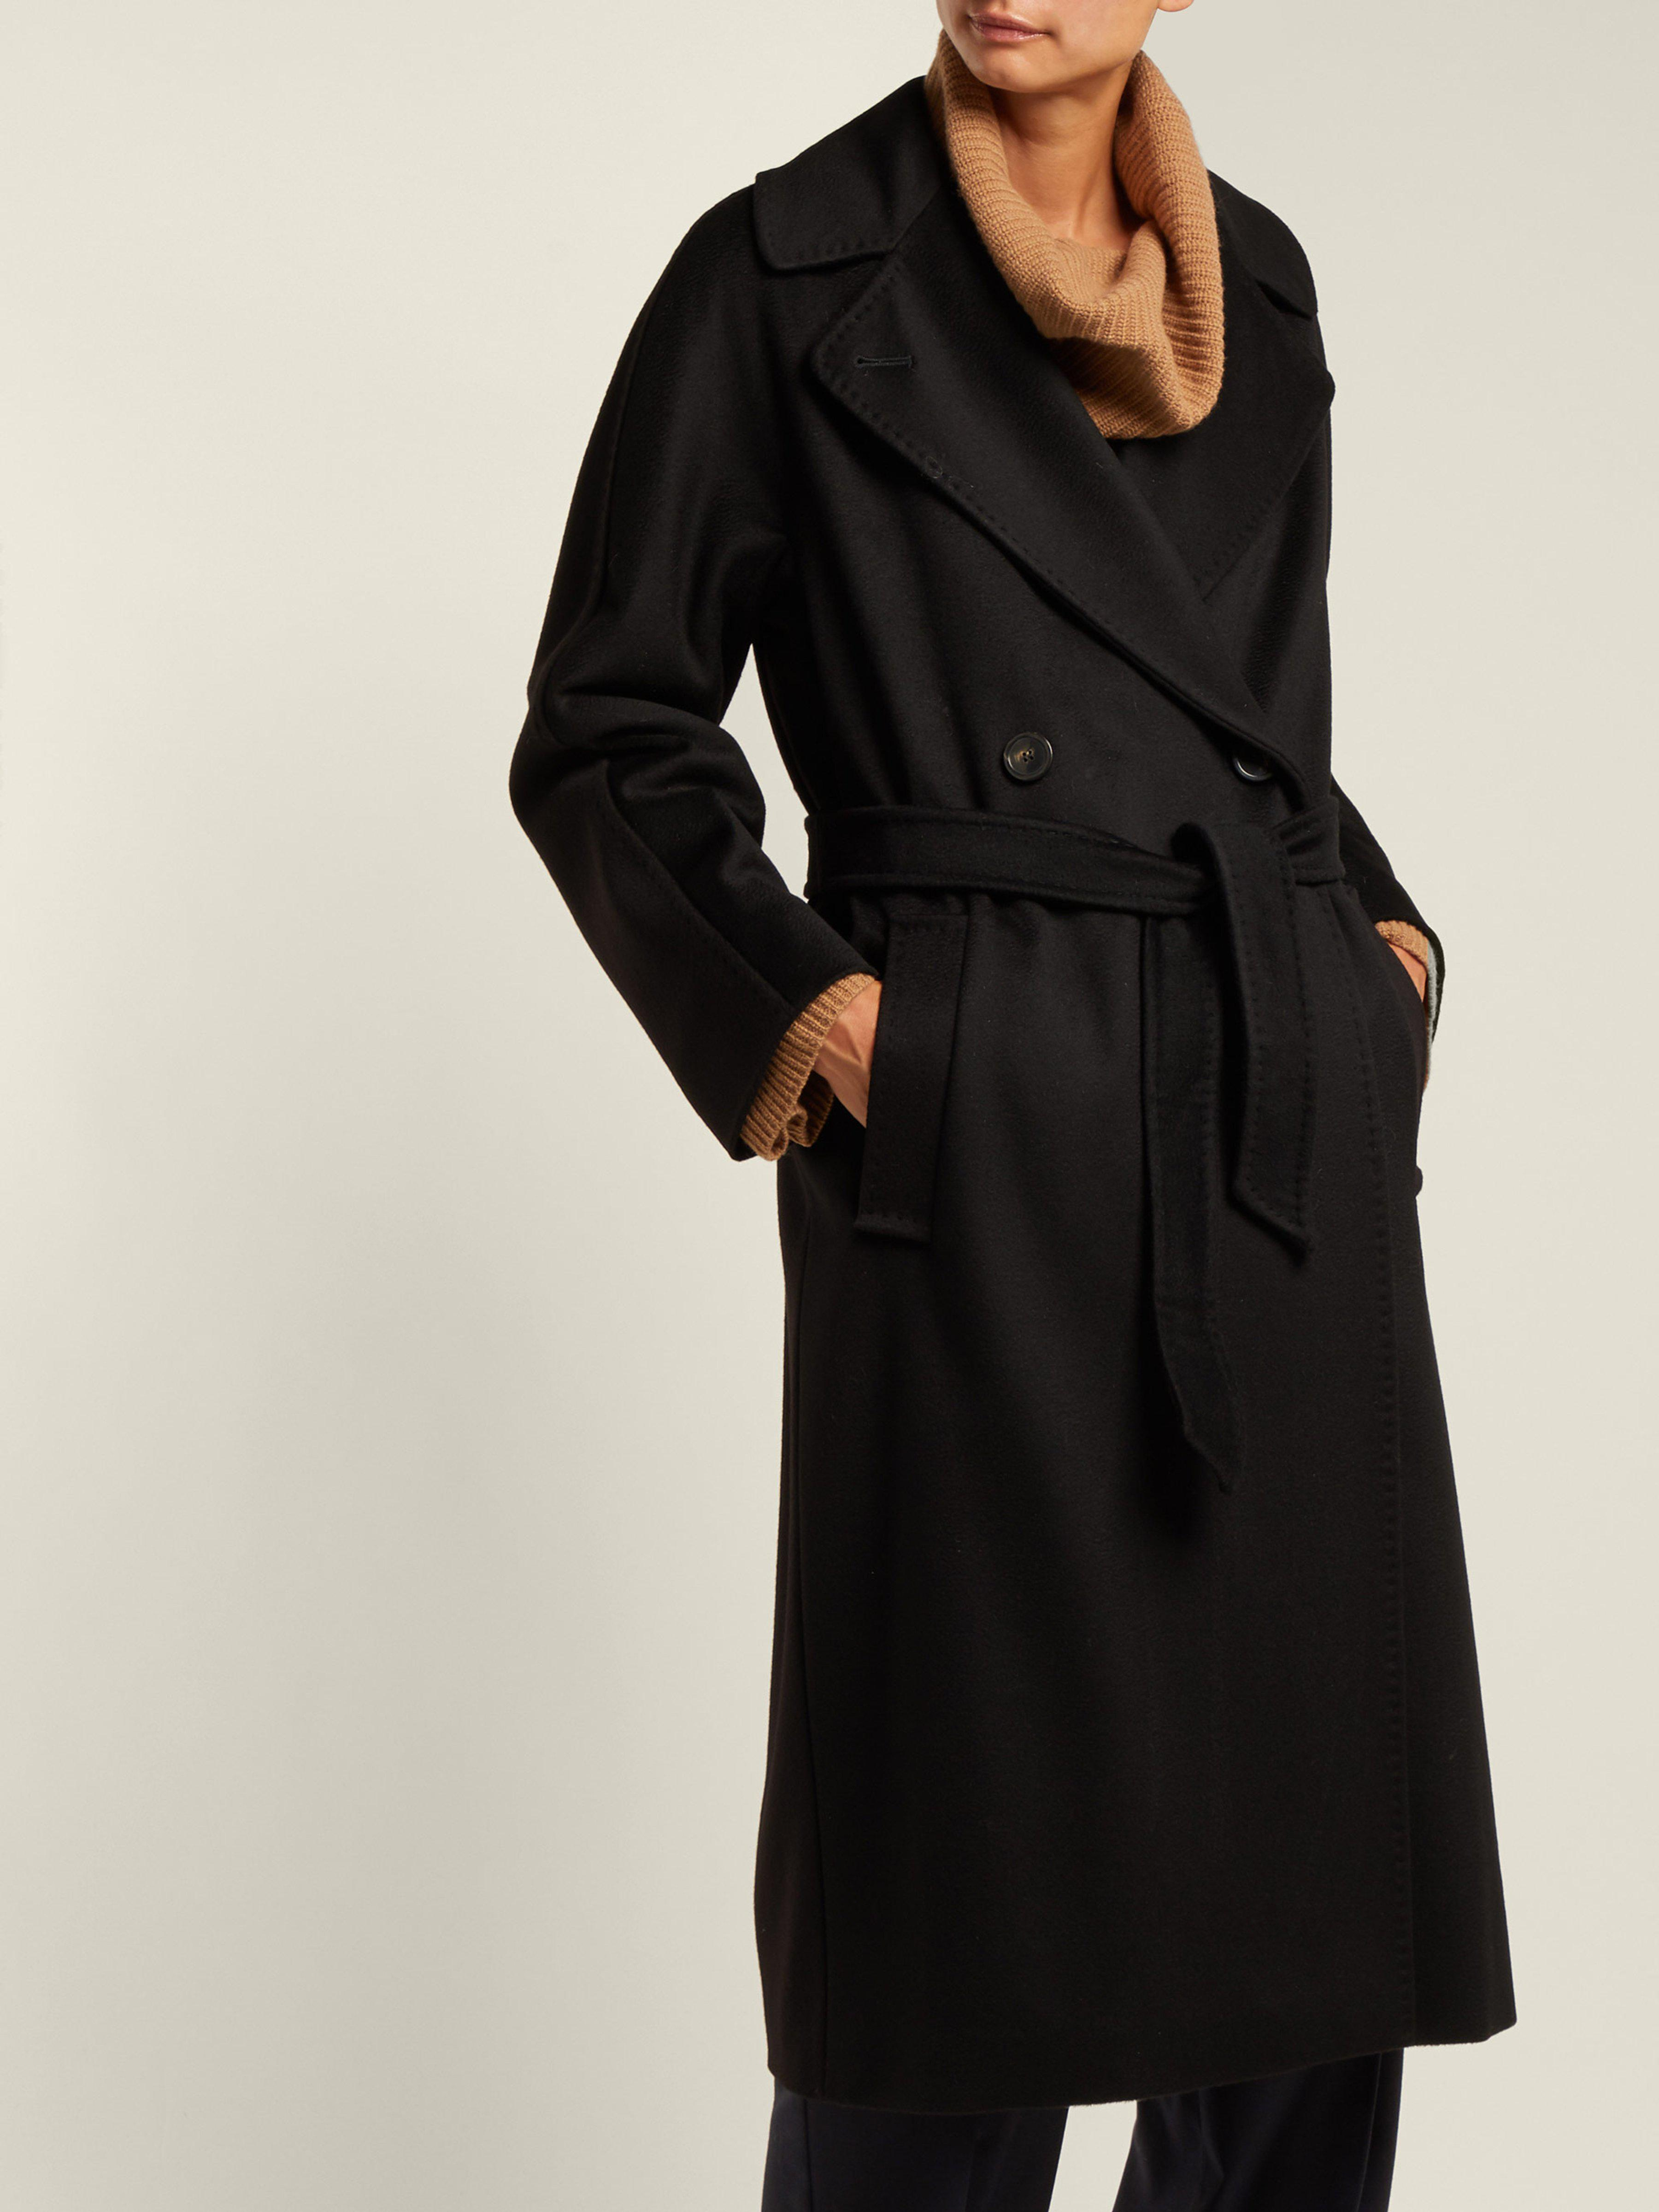 57c359321d288 Weekend by Maxmara Katai Coat in Black - Lyst